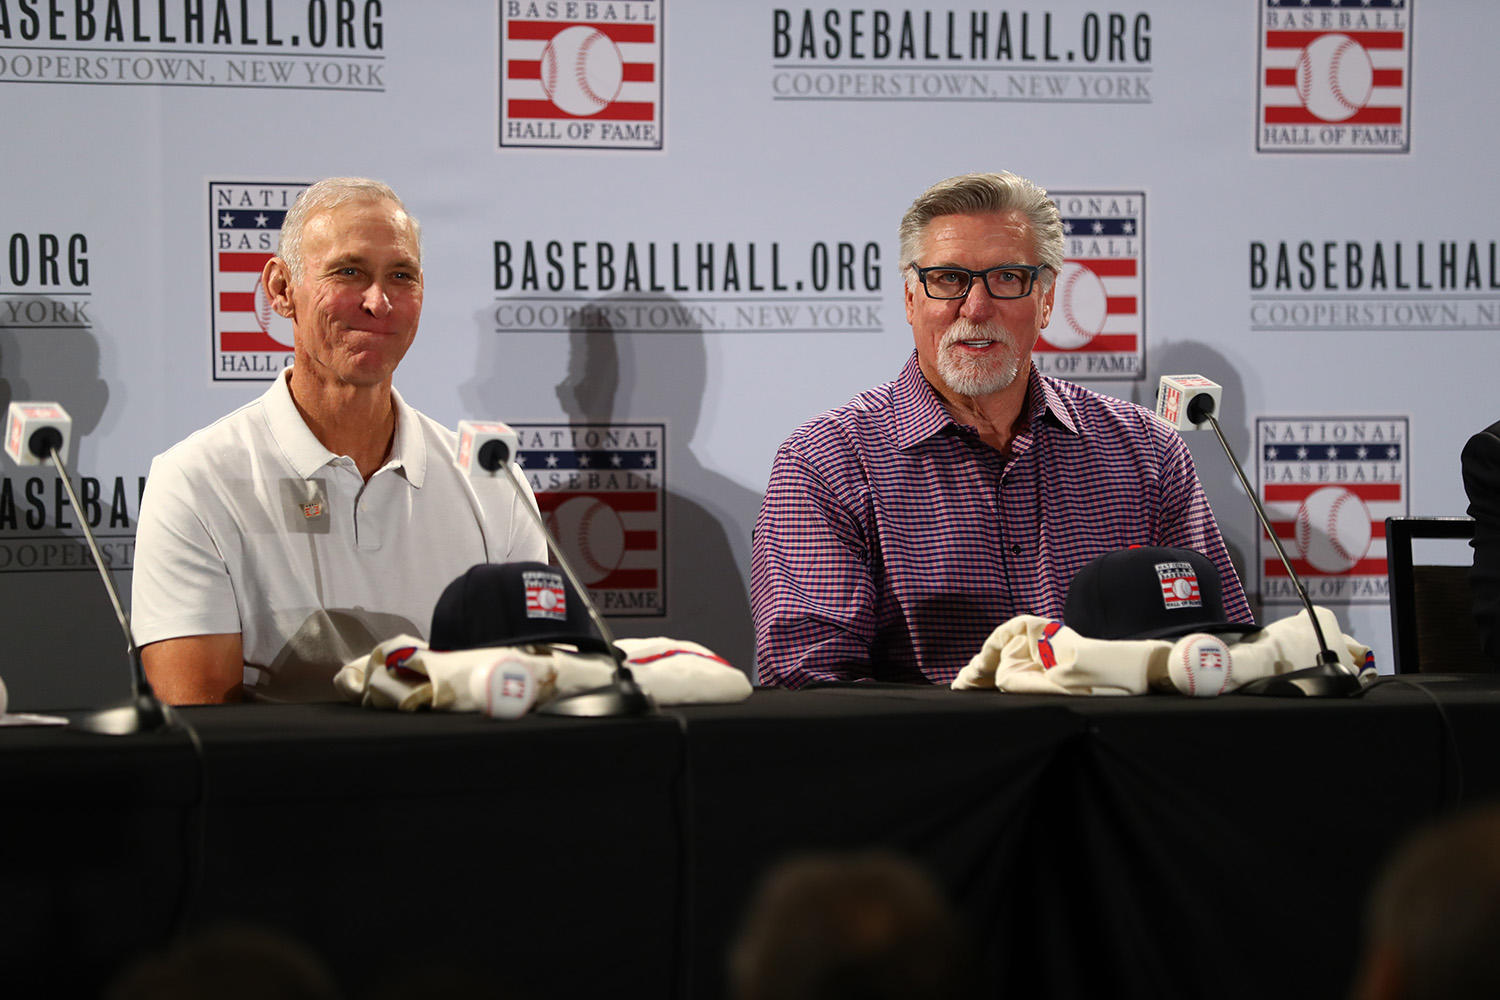 Alan Trammell and Jack Morris address the media during the Modern Baseball Era electee press conference. (Alex Trautwig/MLB Photos)